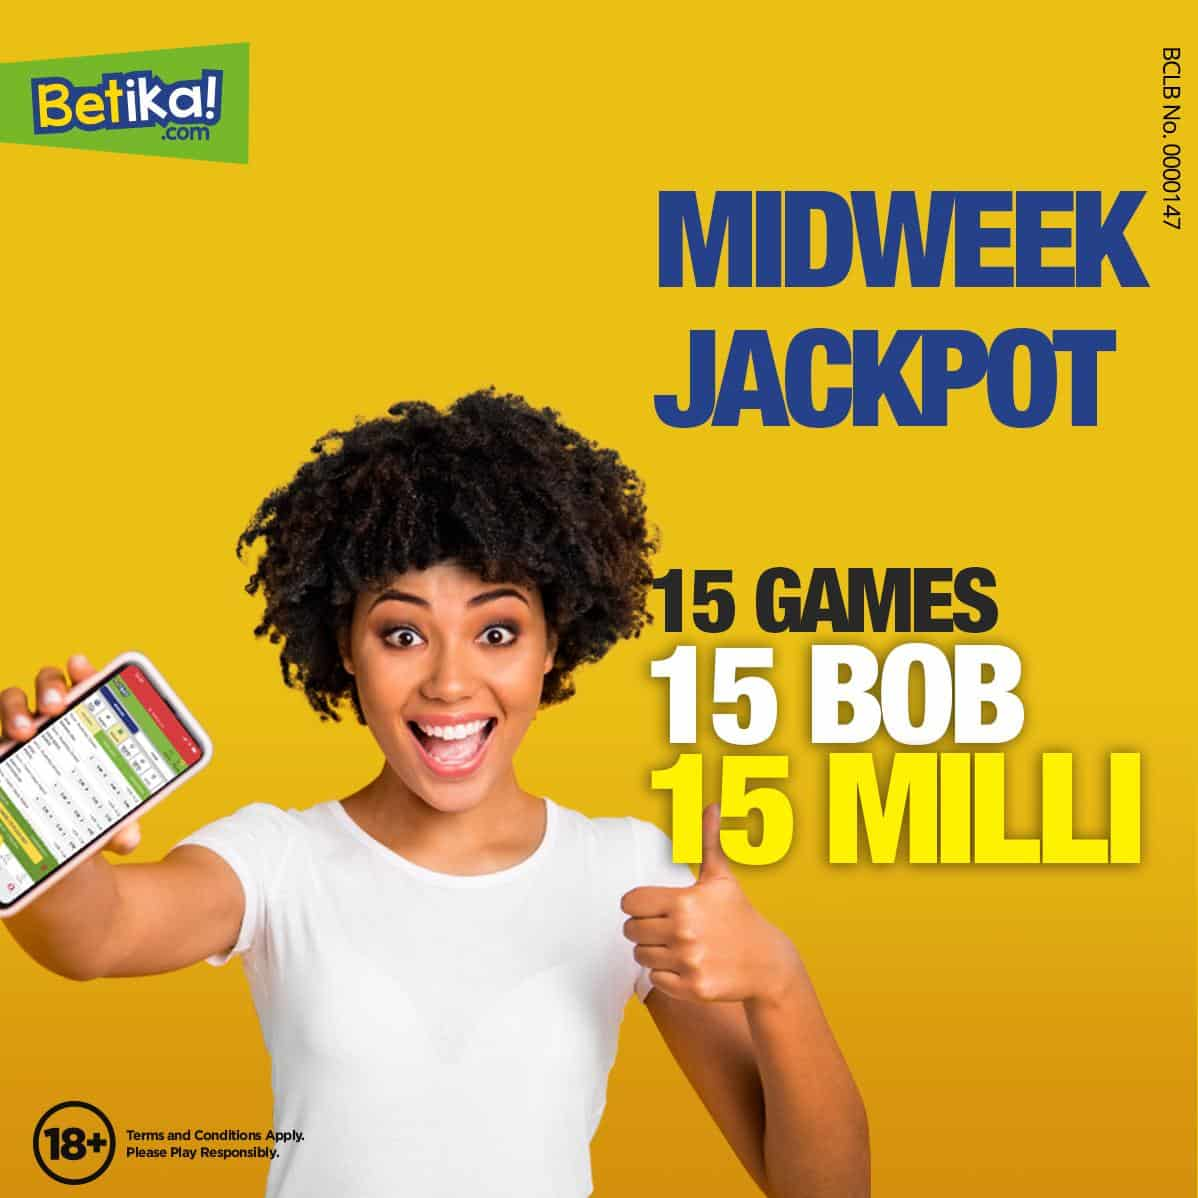 10th March Betika Midweek Jackpot Predictions